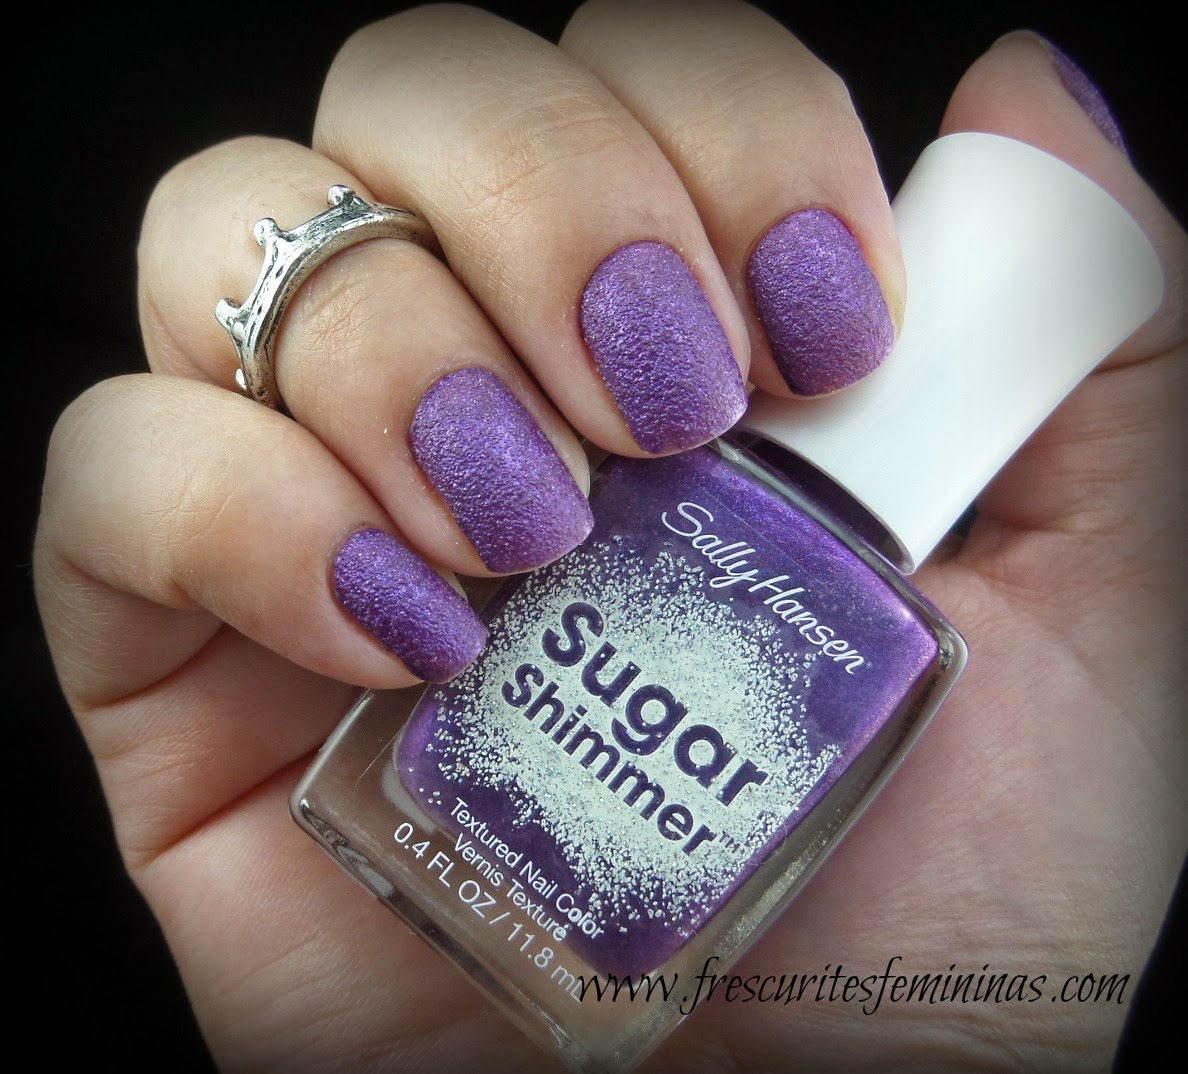 Sugar Shimmer, Gummy Grape, Sally Hansen, Frescurites Femininas, Sand Nail Polish